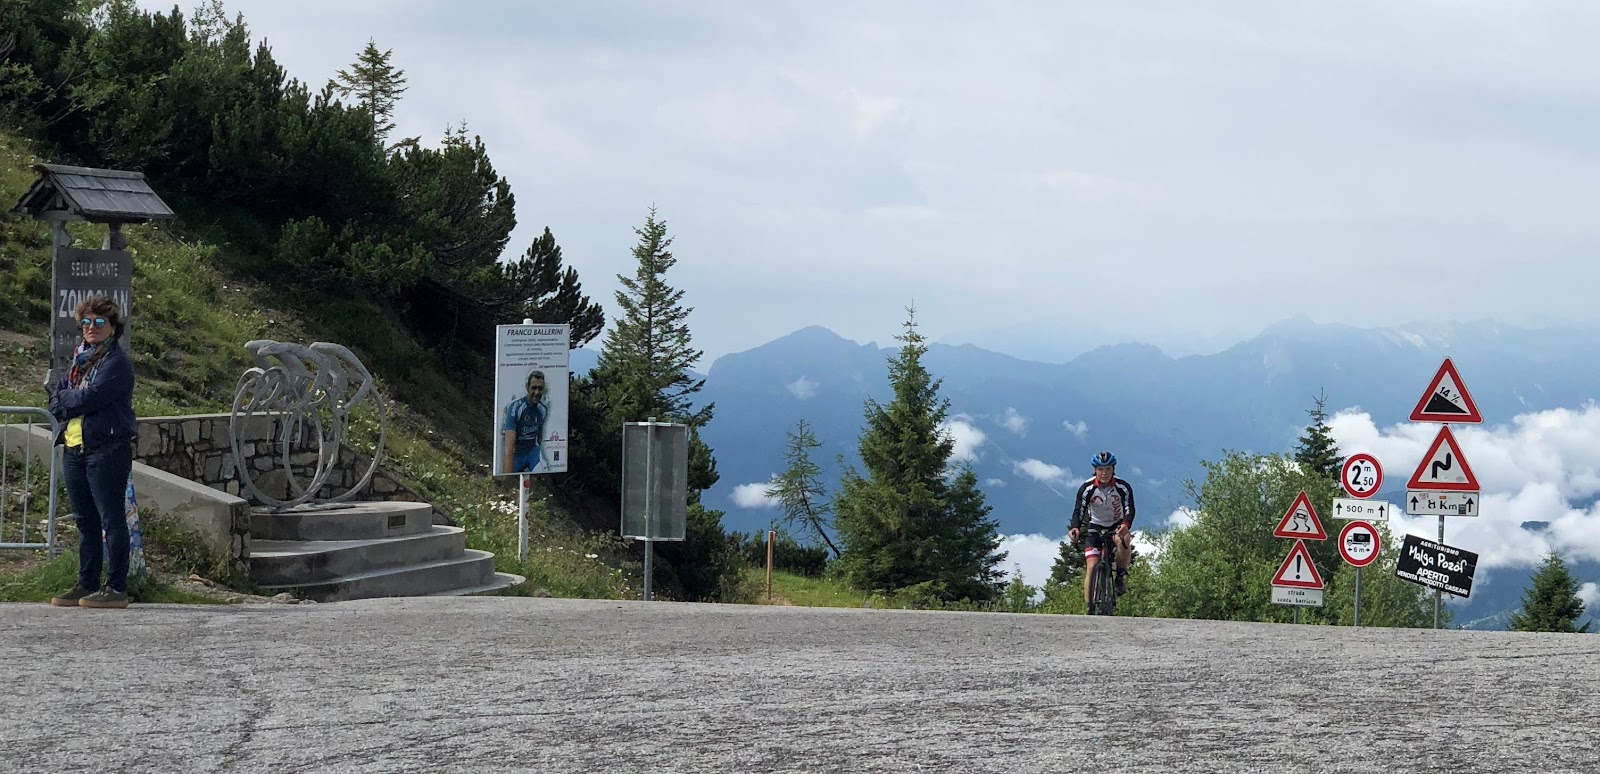 Monte Zoncolan from Ovaro bike climb - cyclist reaching the pass